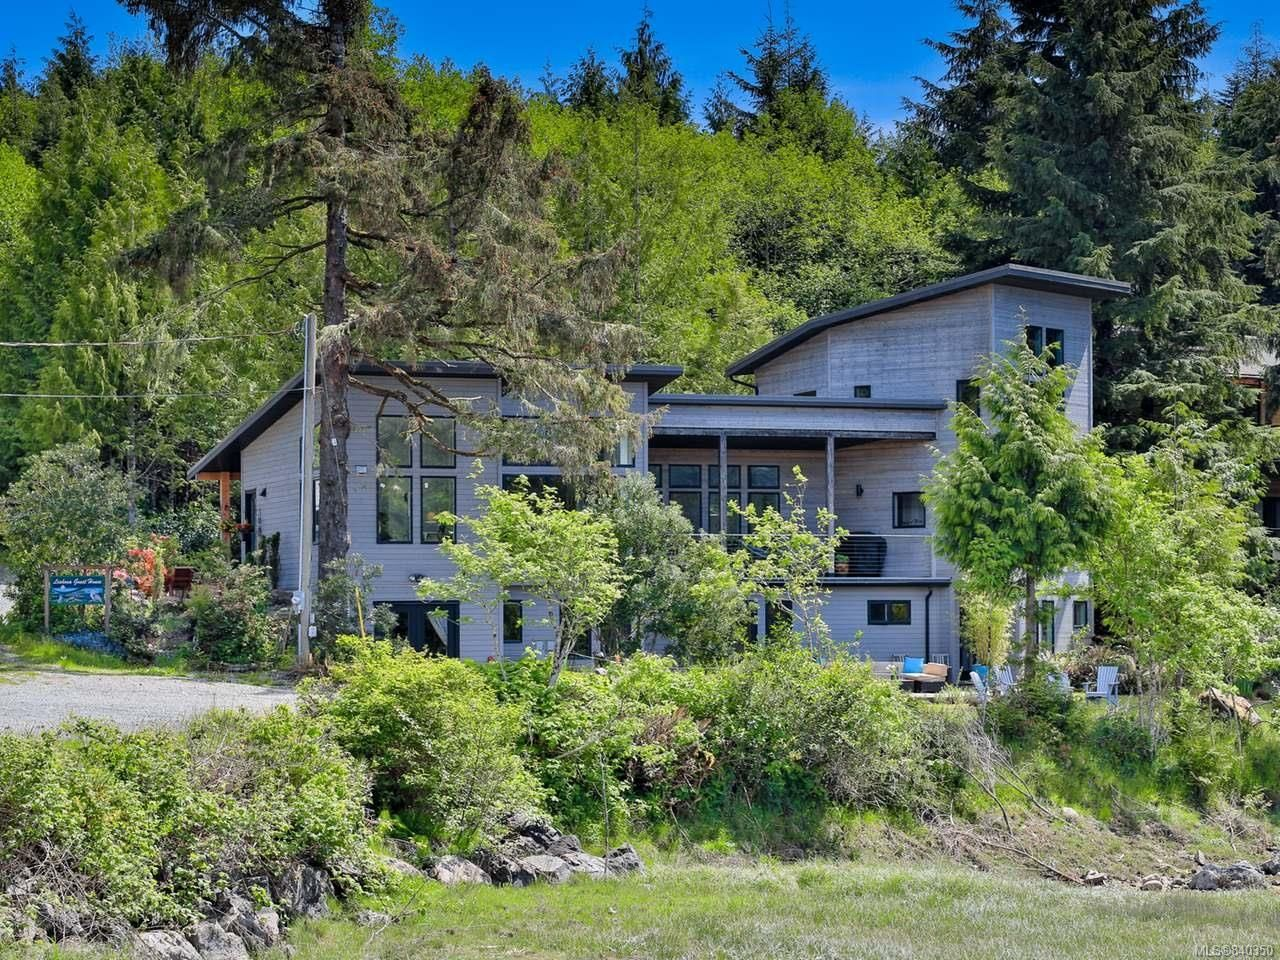 Photo 71: Photos: 1068 Helen Rd in UCLUELET: PA Ucluelet House for sale (Port Alberni)  : MLS®# 840350